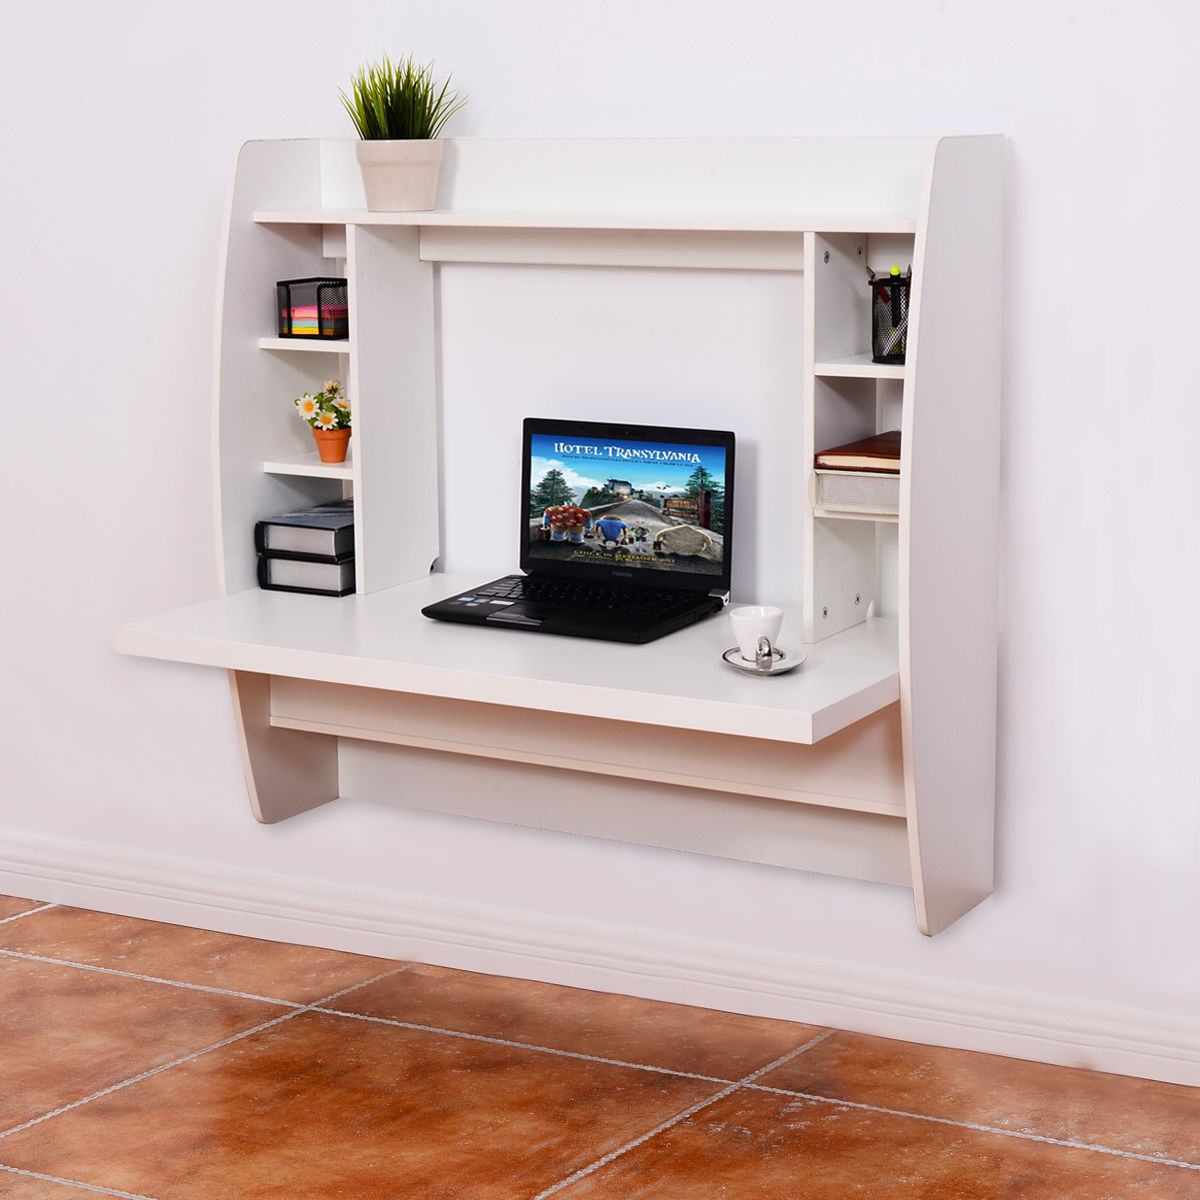 Floating Computer Desk costway white wall mount floating computer desk storage two shelf